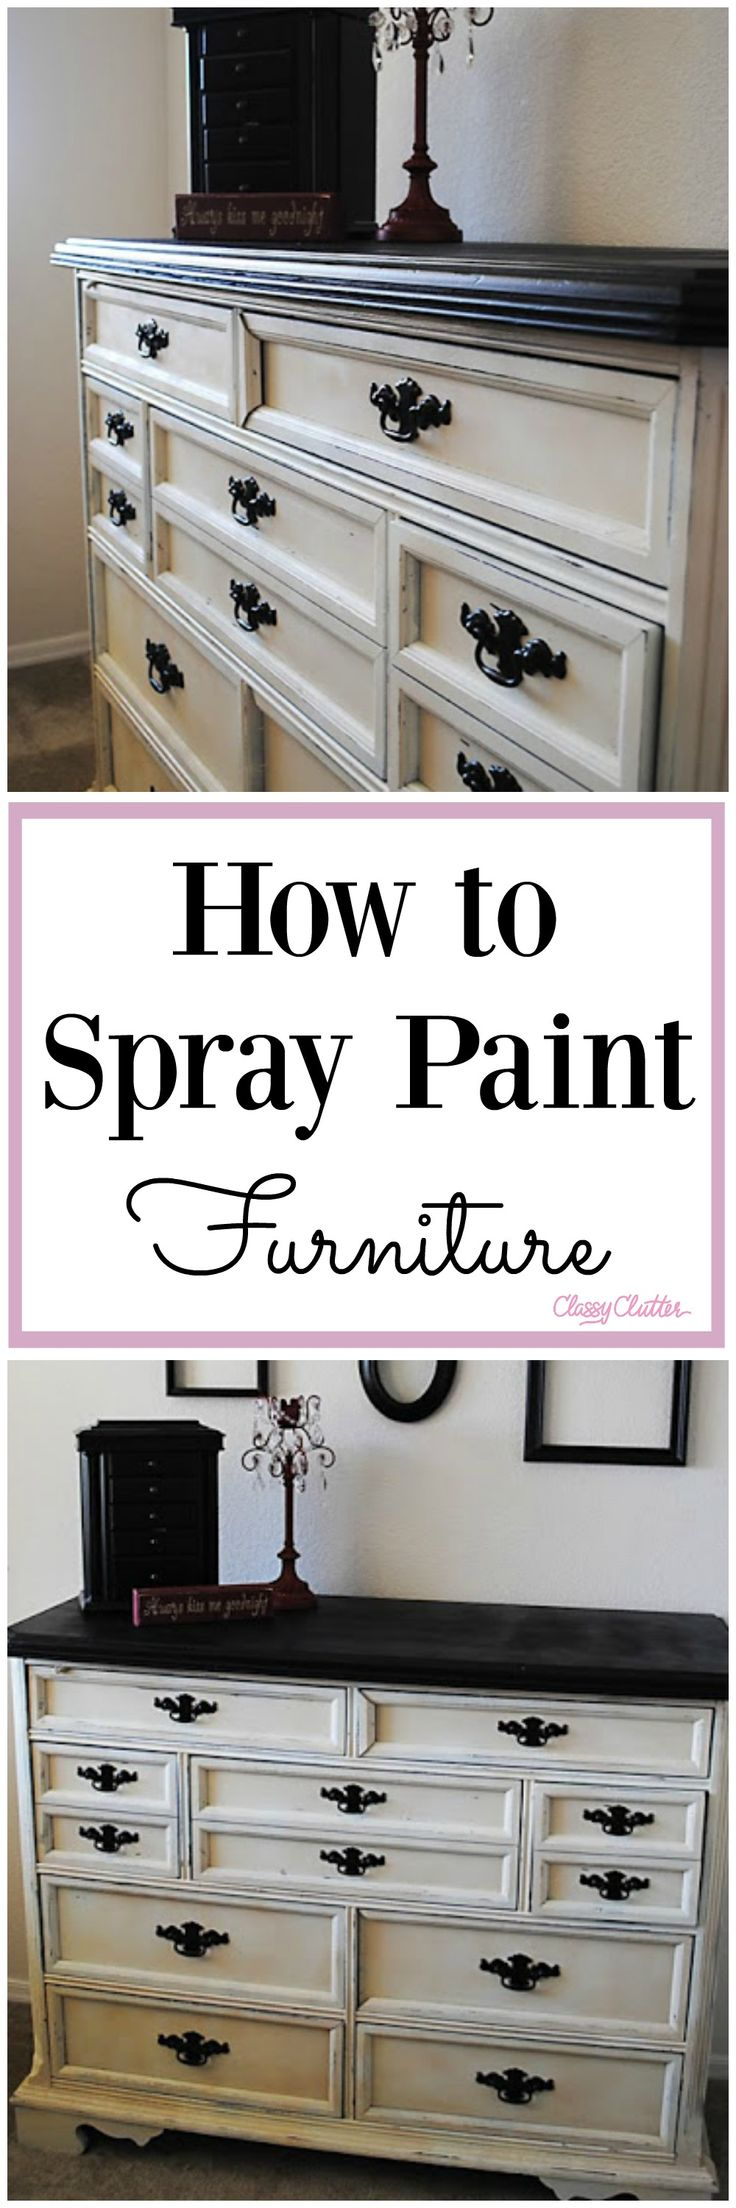 How to spray paint furniture. The simple and easy tips. Check them out